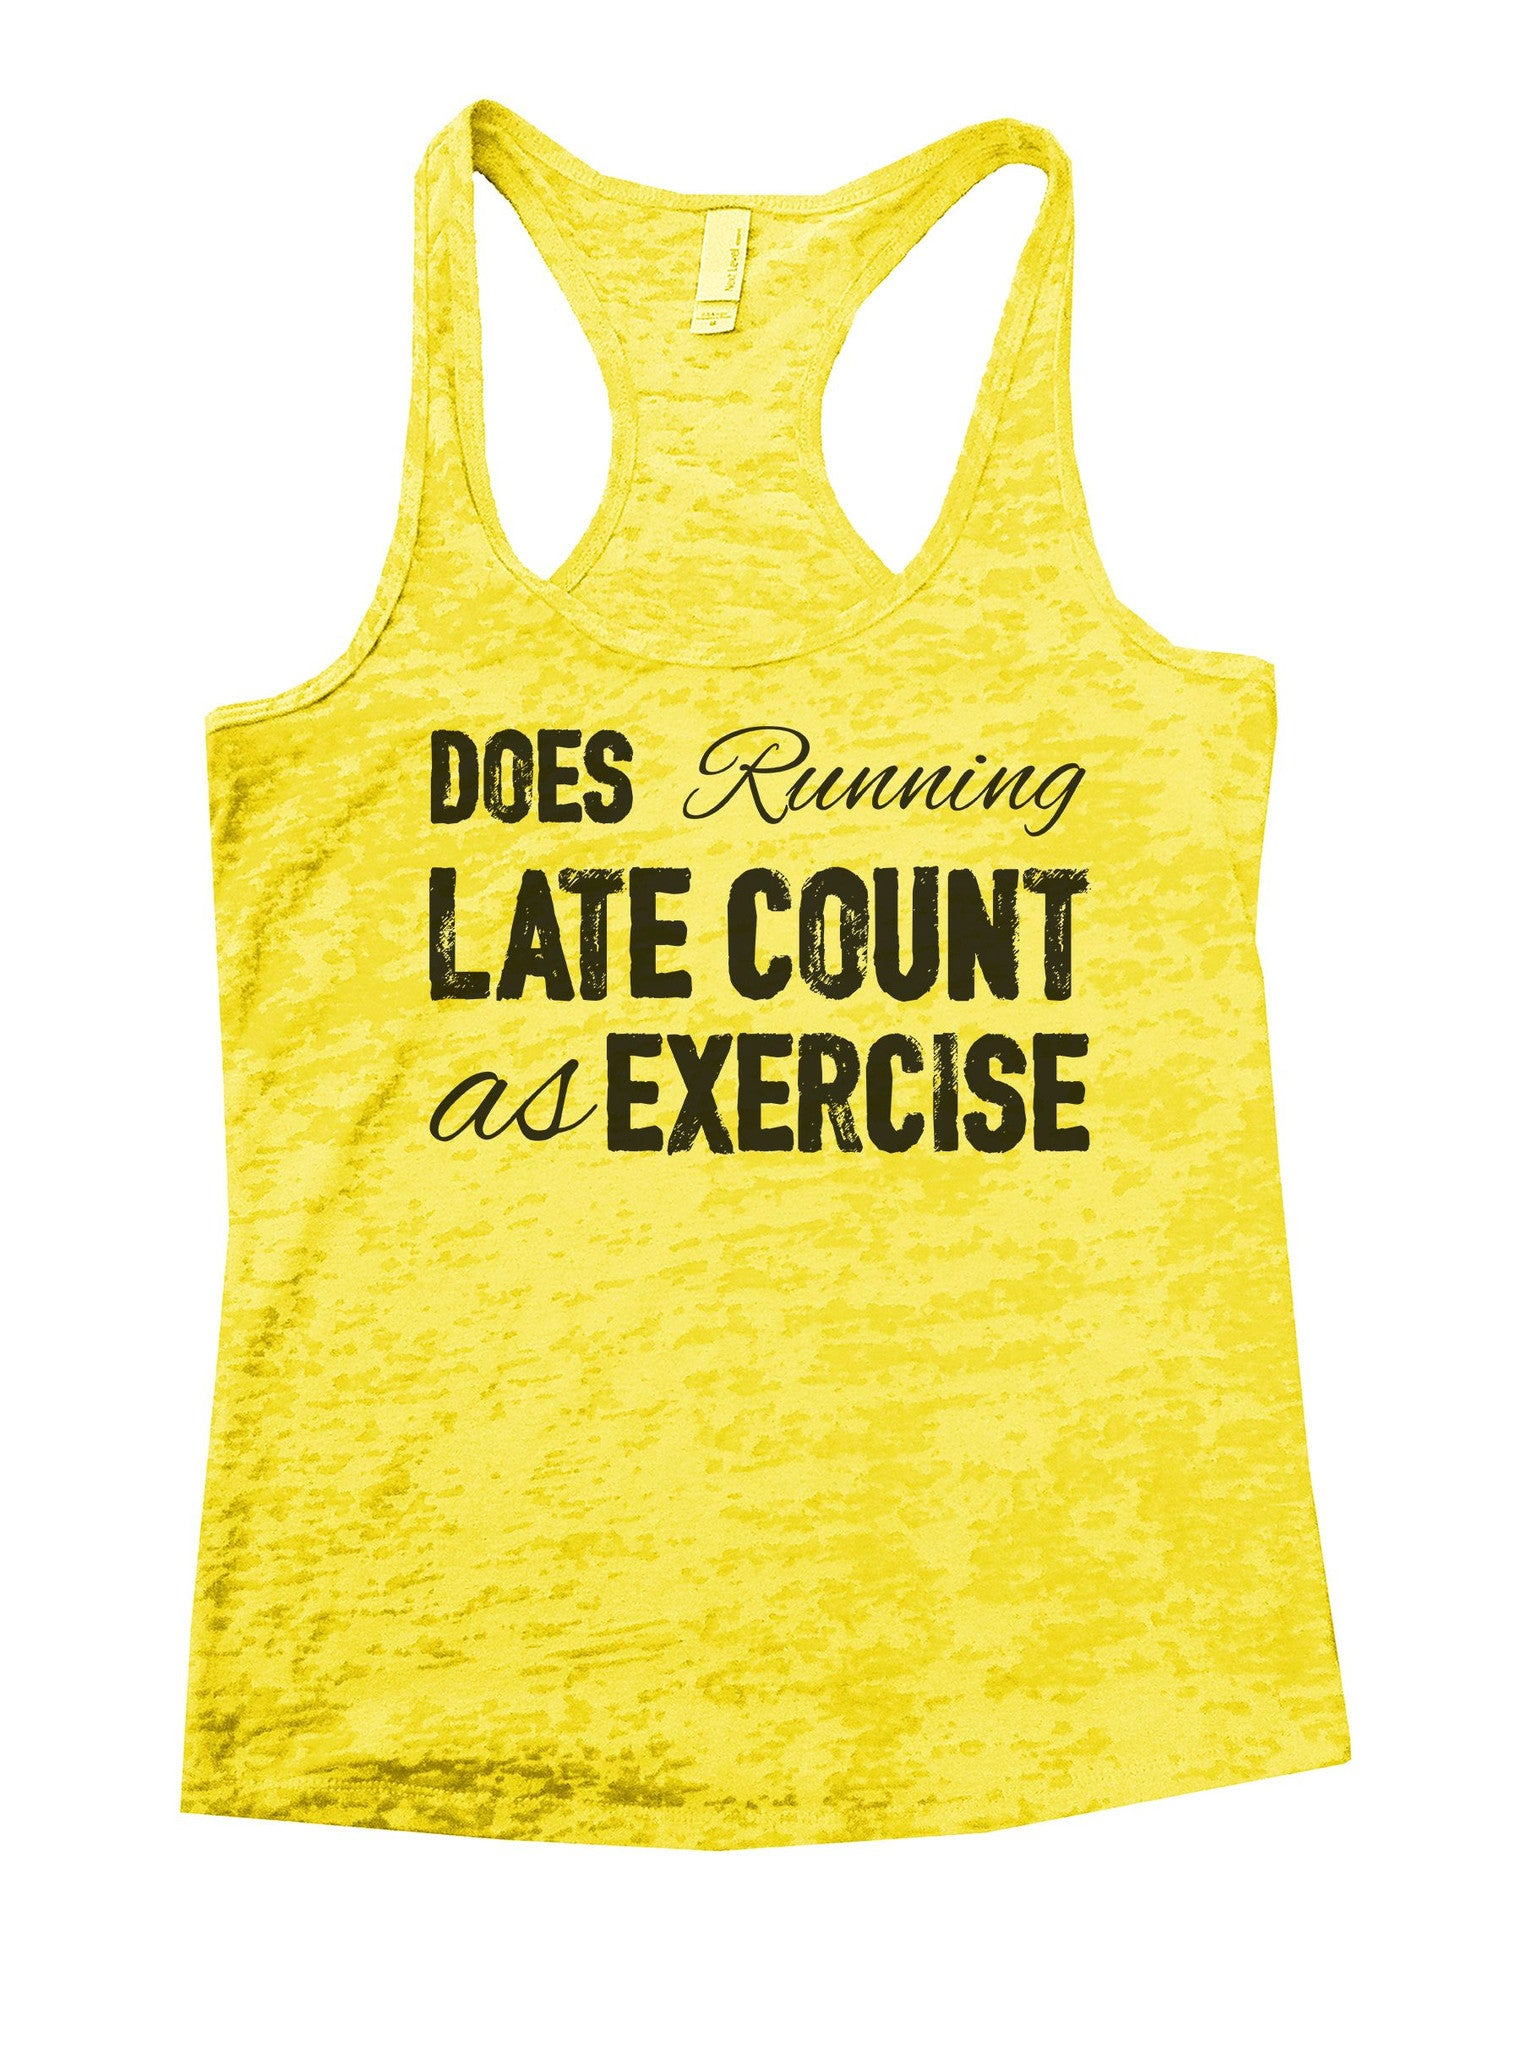 Does Running Late Count As Exercise Burnout Tank Top By BurnoutTankTops.com - 805 - Funny Shirts Tank Tops Burnouts and Triblends  - 7